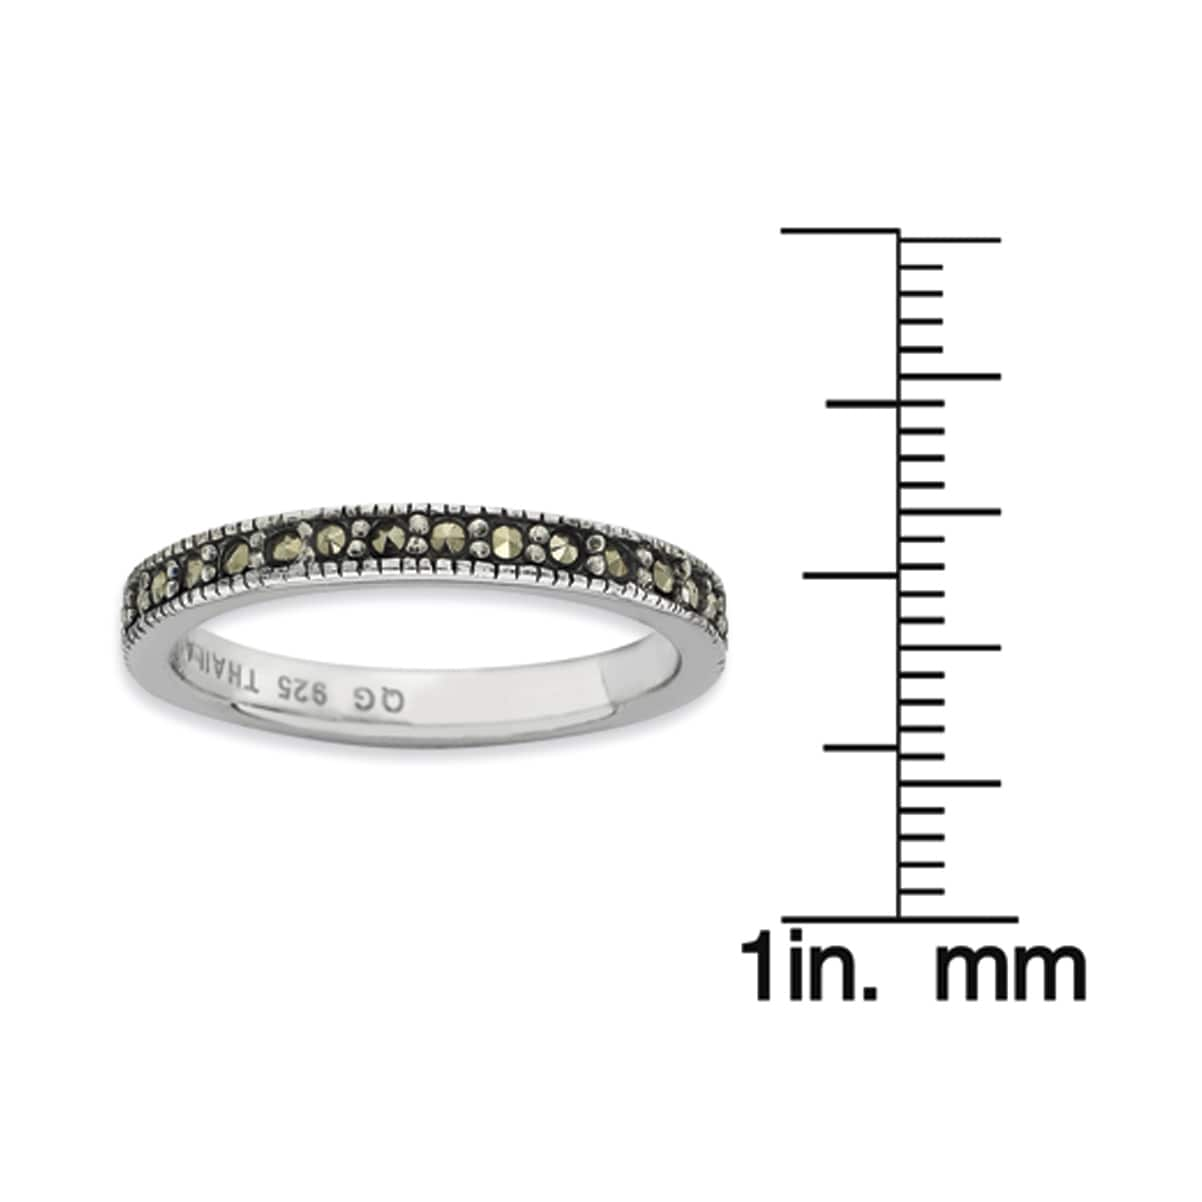 Sterling Silver Stackable Expressions Marcasite Ring 3 mm Band QSK816